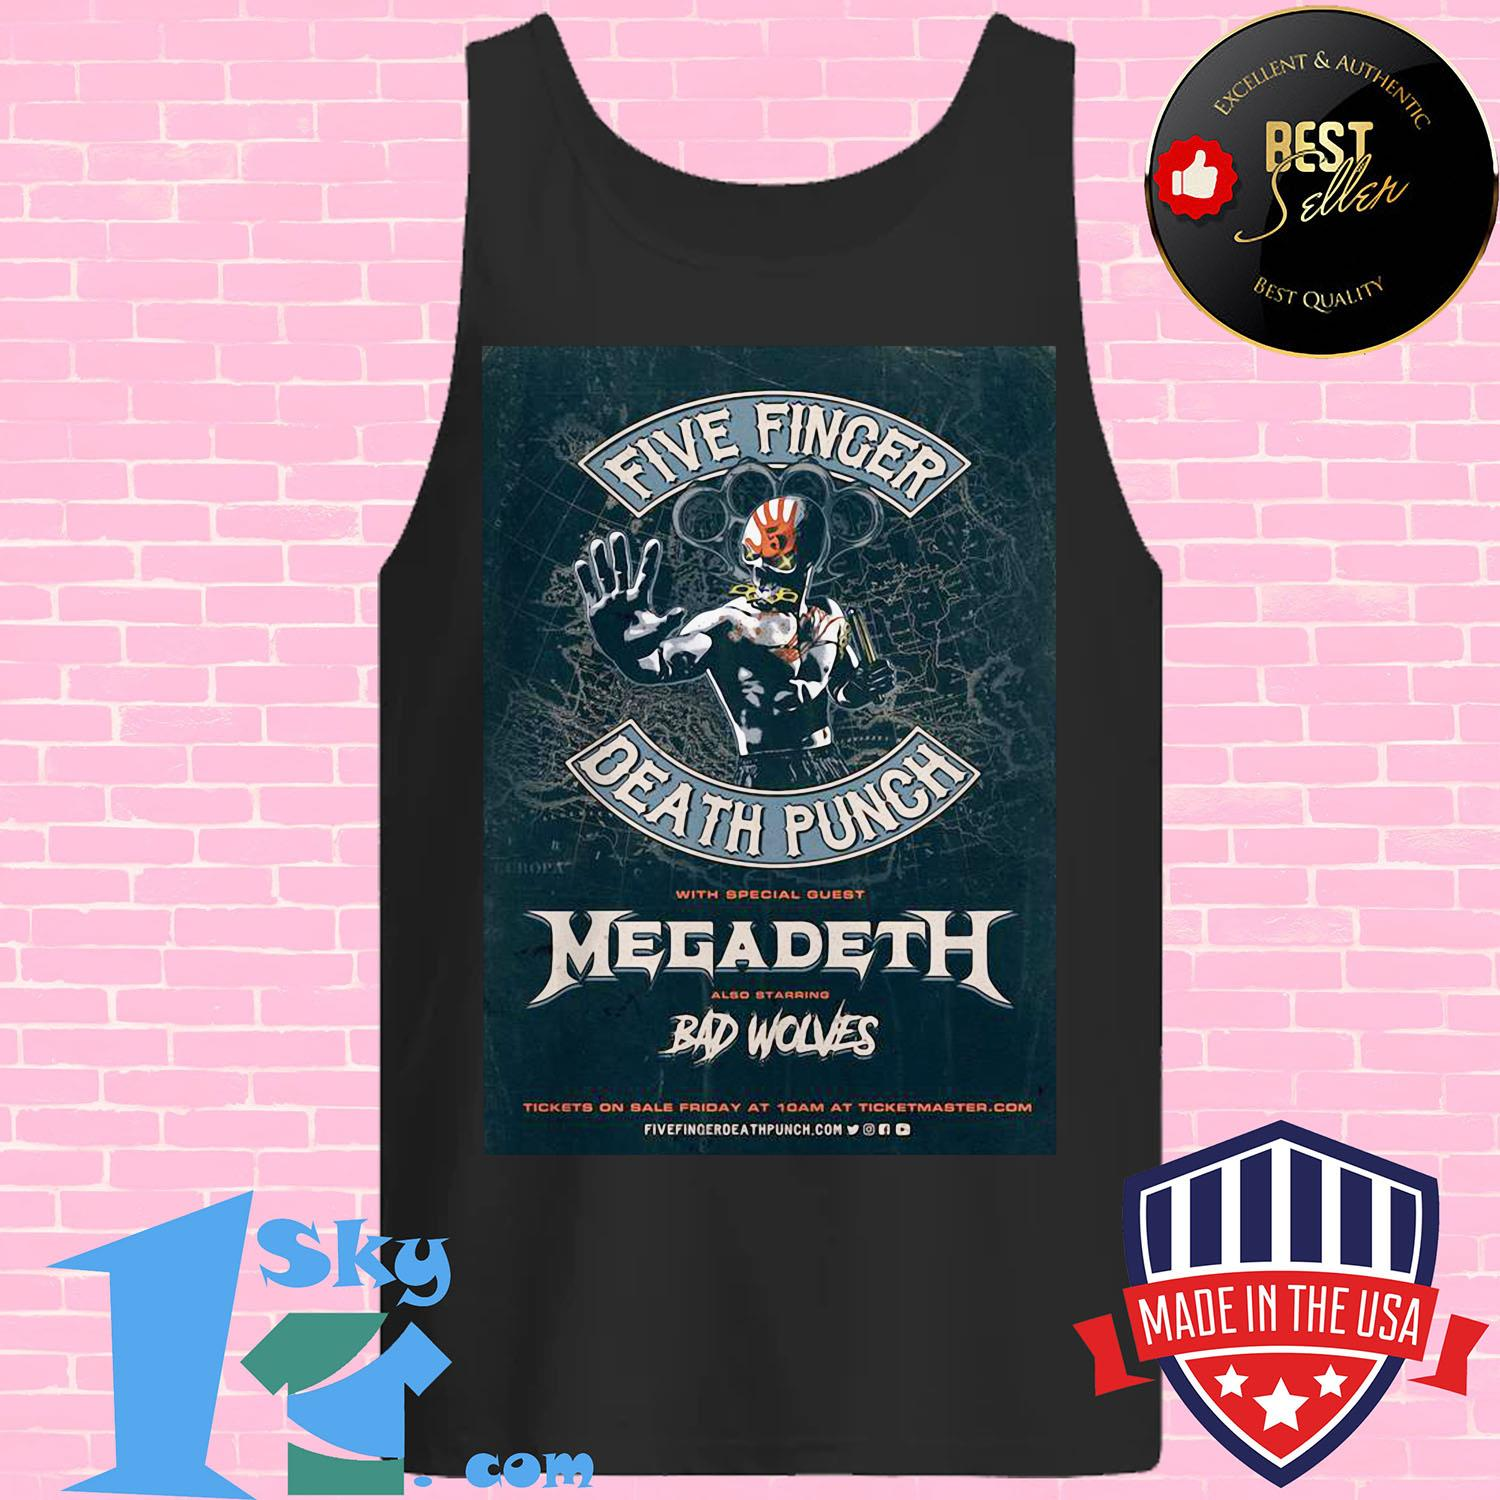 five finger death punch with special guest megadeth also starring bad wolves 2020 european tank top - Five Finger Death Punch With Special Guest Megadeth Also Starring Bad Wolves 2020 European shirt